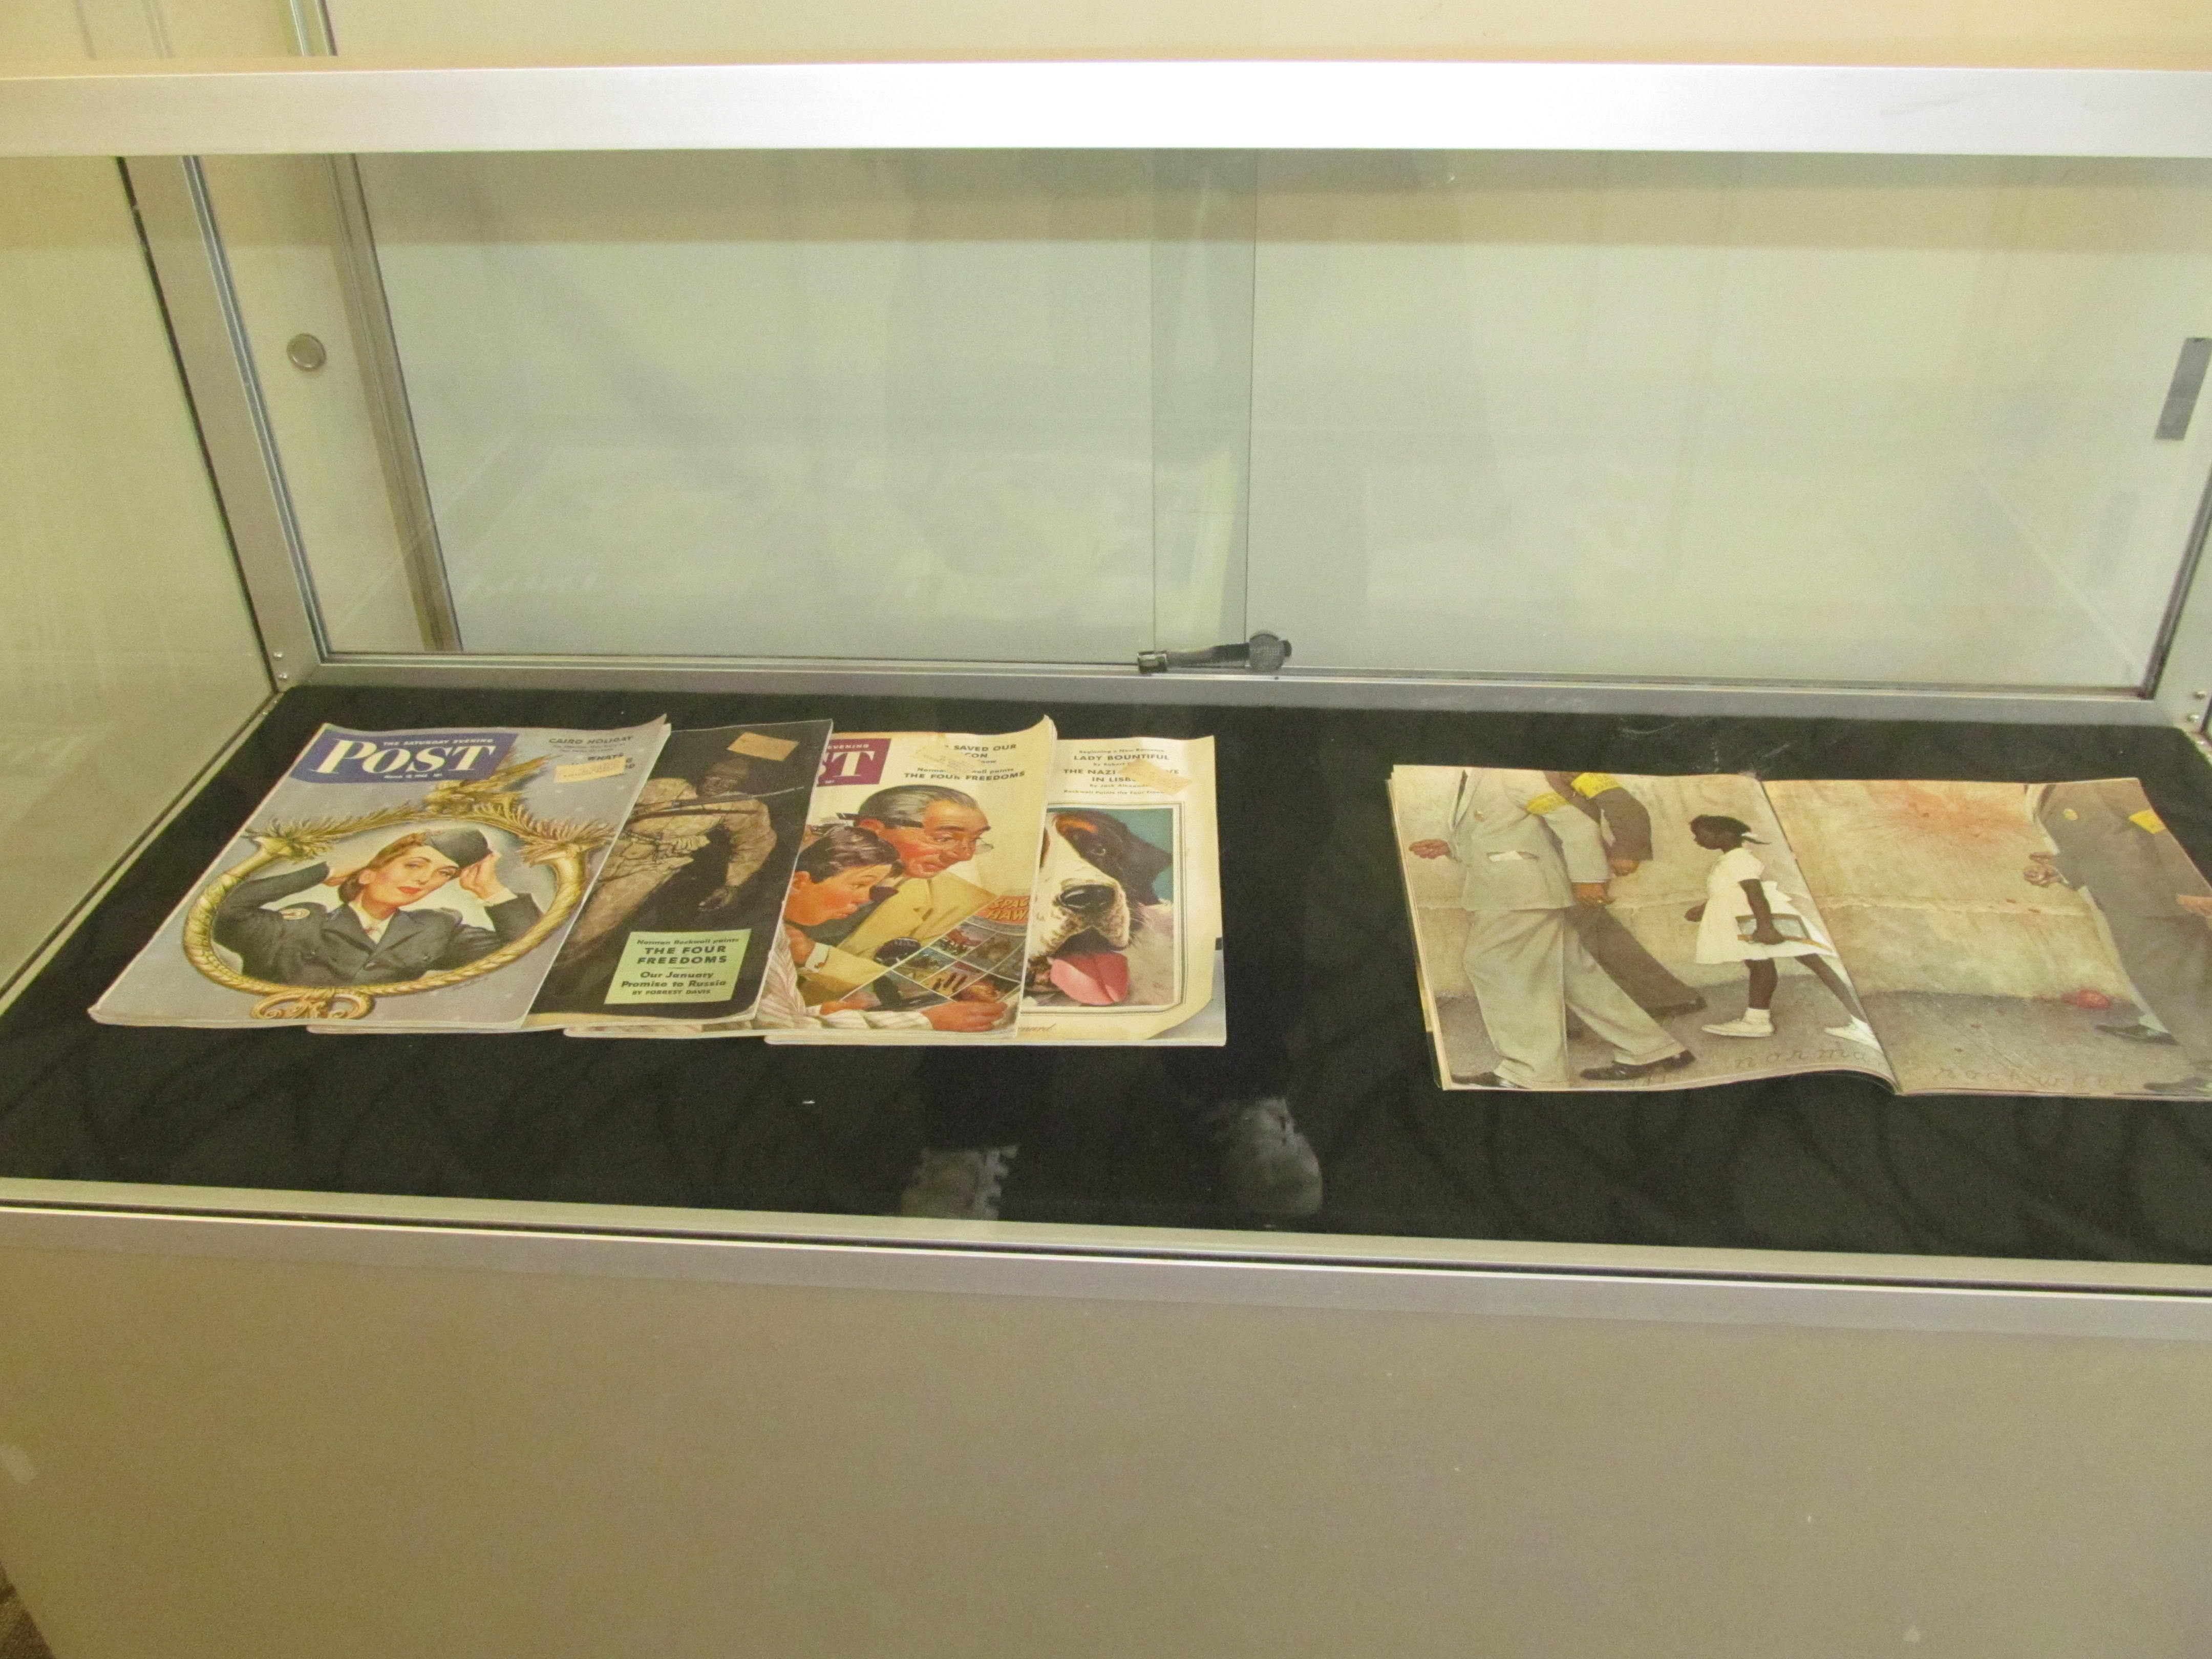 Norman Rockwell's illustrations are on display at the New Rochelle Public Library.